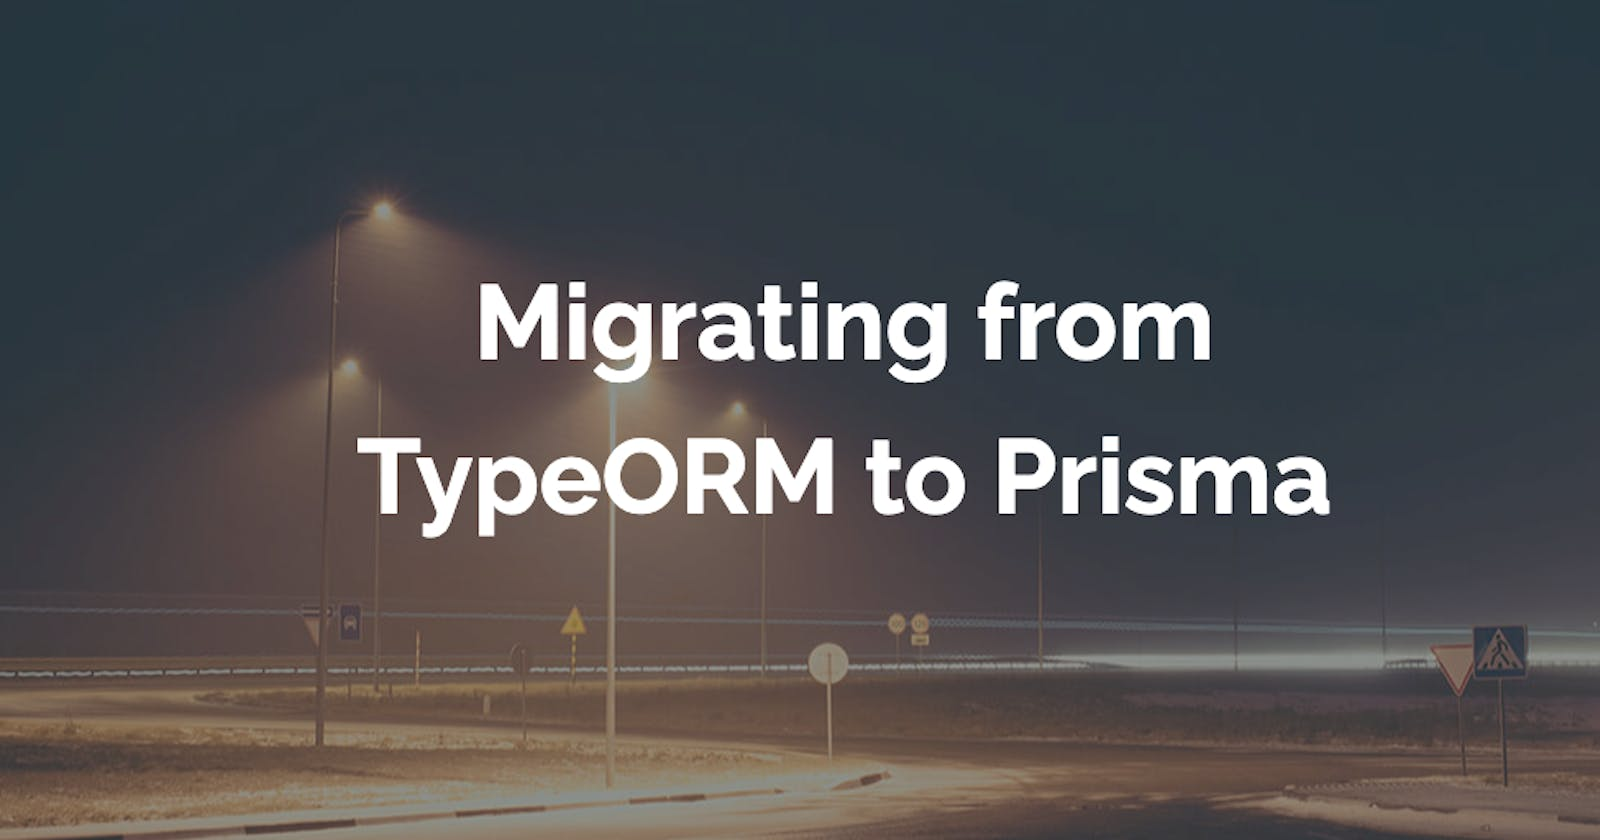 Migrating a Large Production App From TypeORM To Prisma